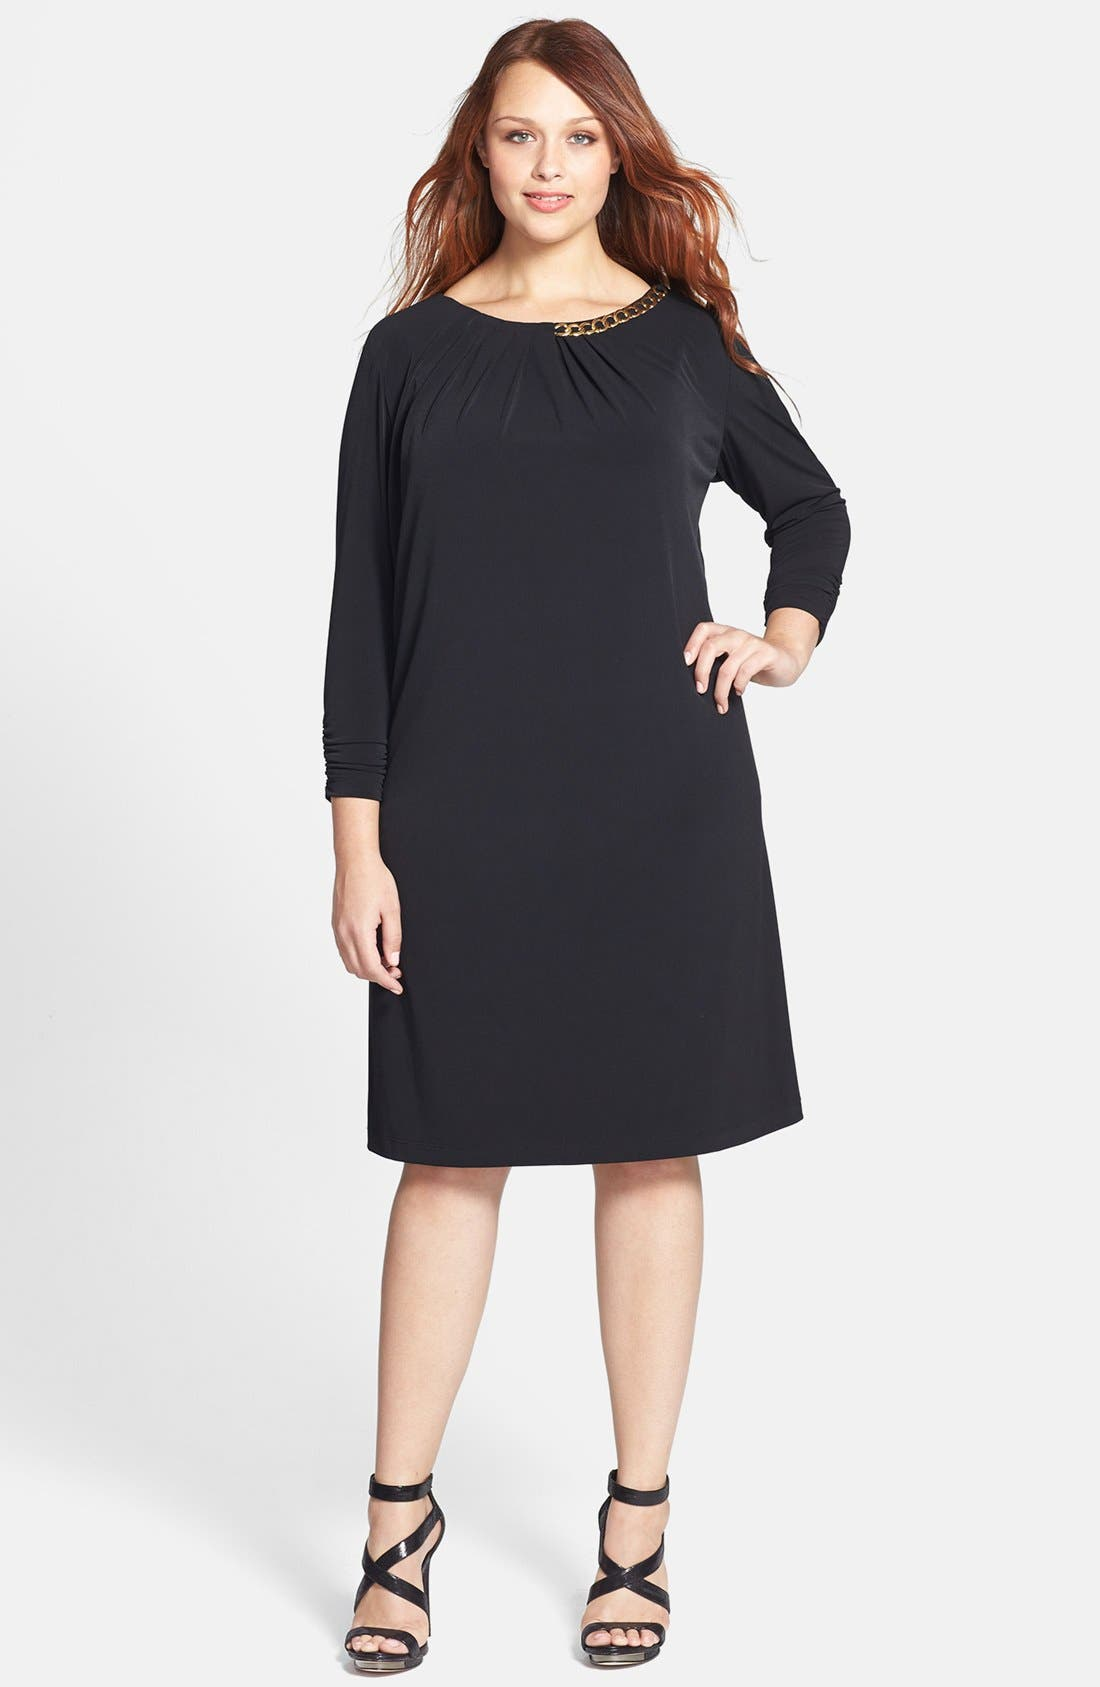 Alternate Image 1 Selected - Tahari by ASL Chain Necklace Detail Jersey Dress (Plus)